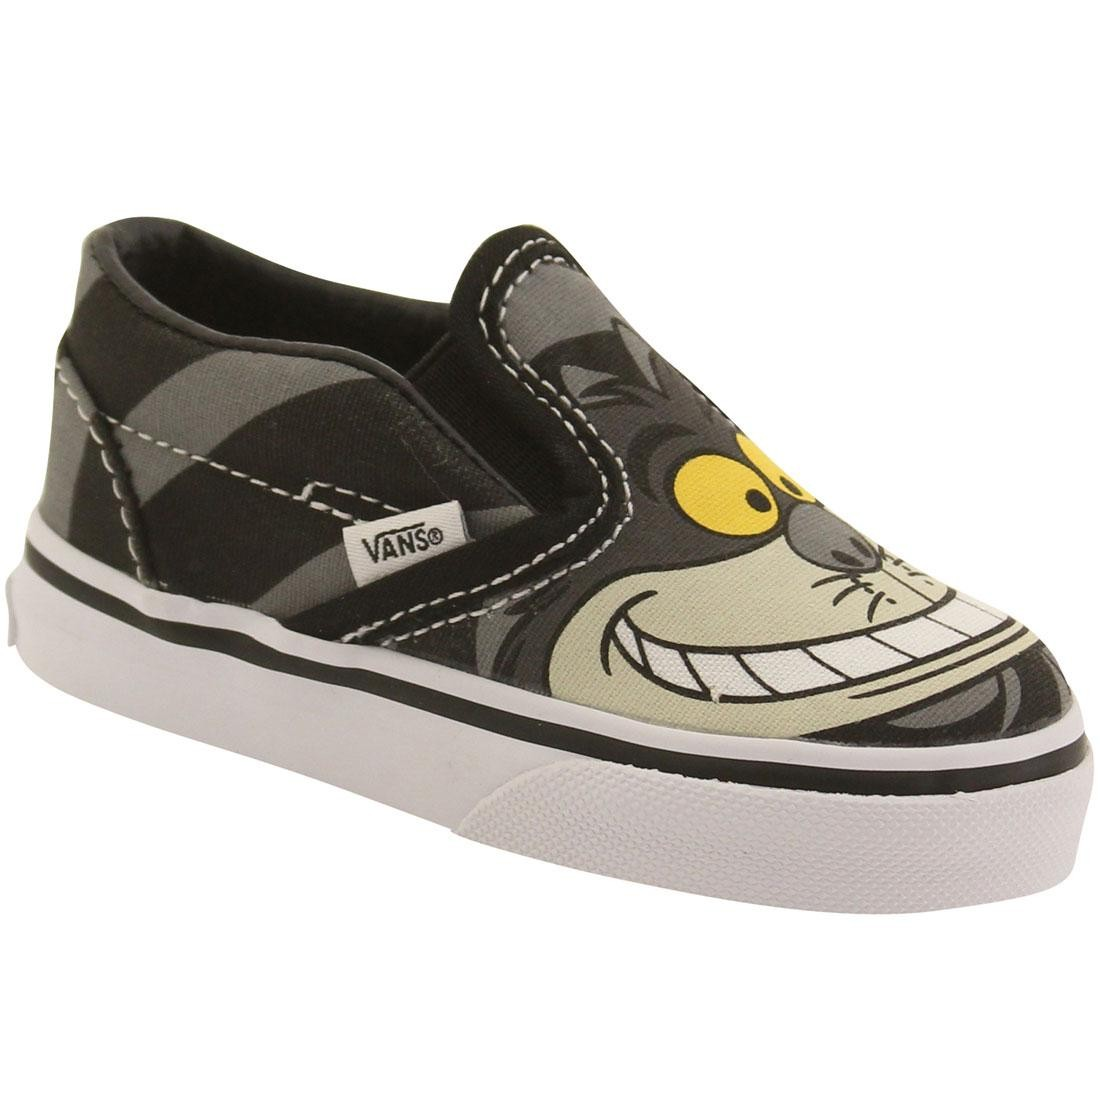 1f9b1e27b4 Vans x Disney Toddlers Classic Slip-On - Alice In Wonderland Cheshire Cat  (black)